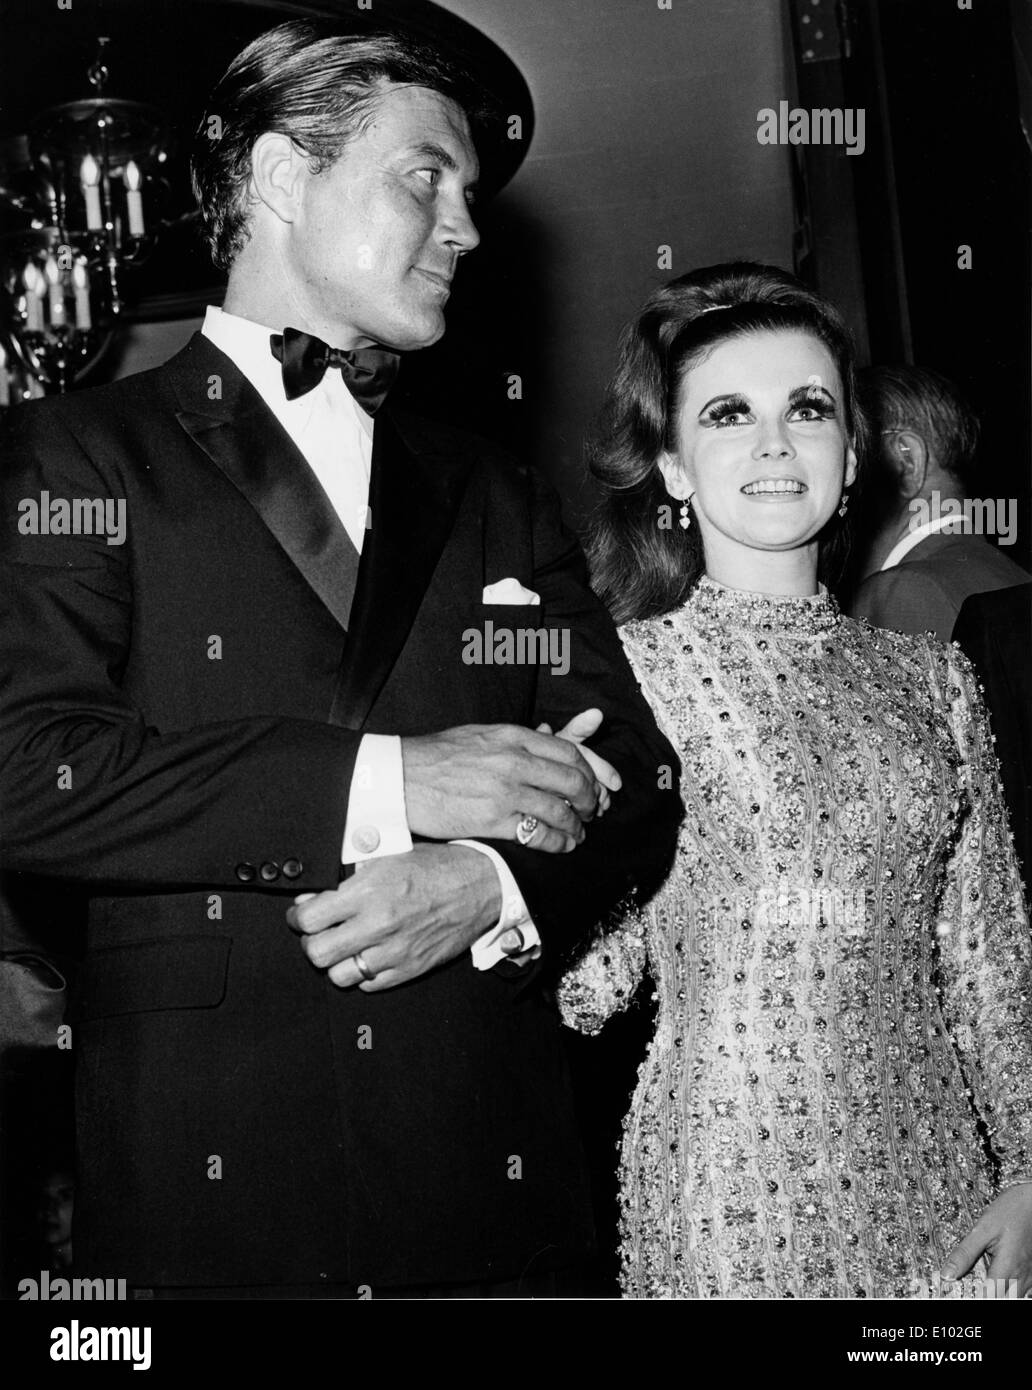 Actress Ann Margret At After Party With Roger Smith Stock